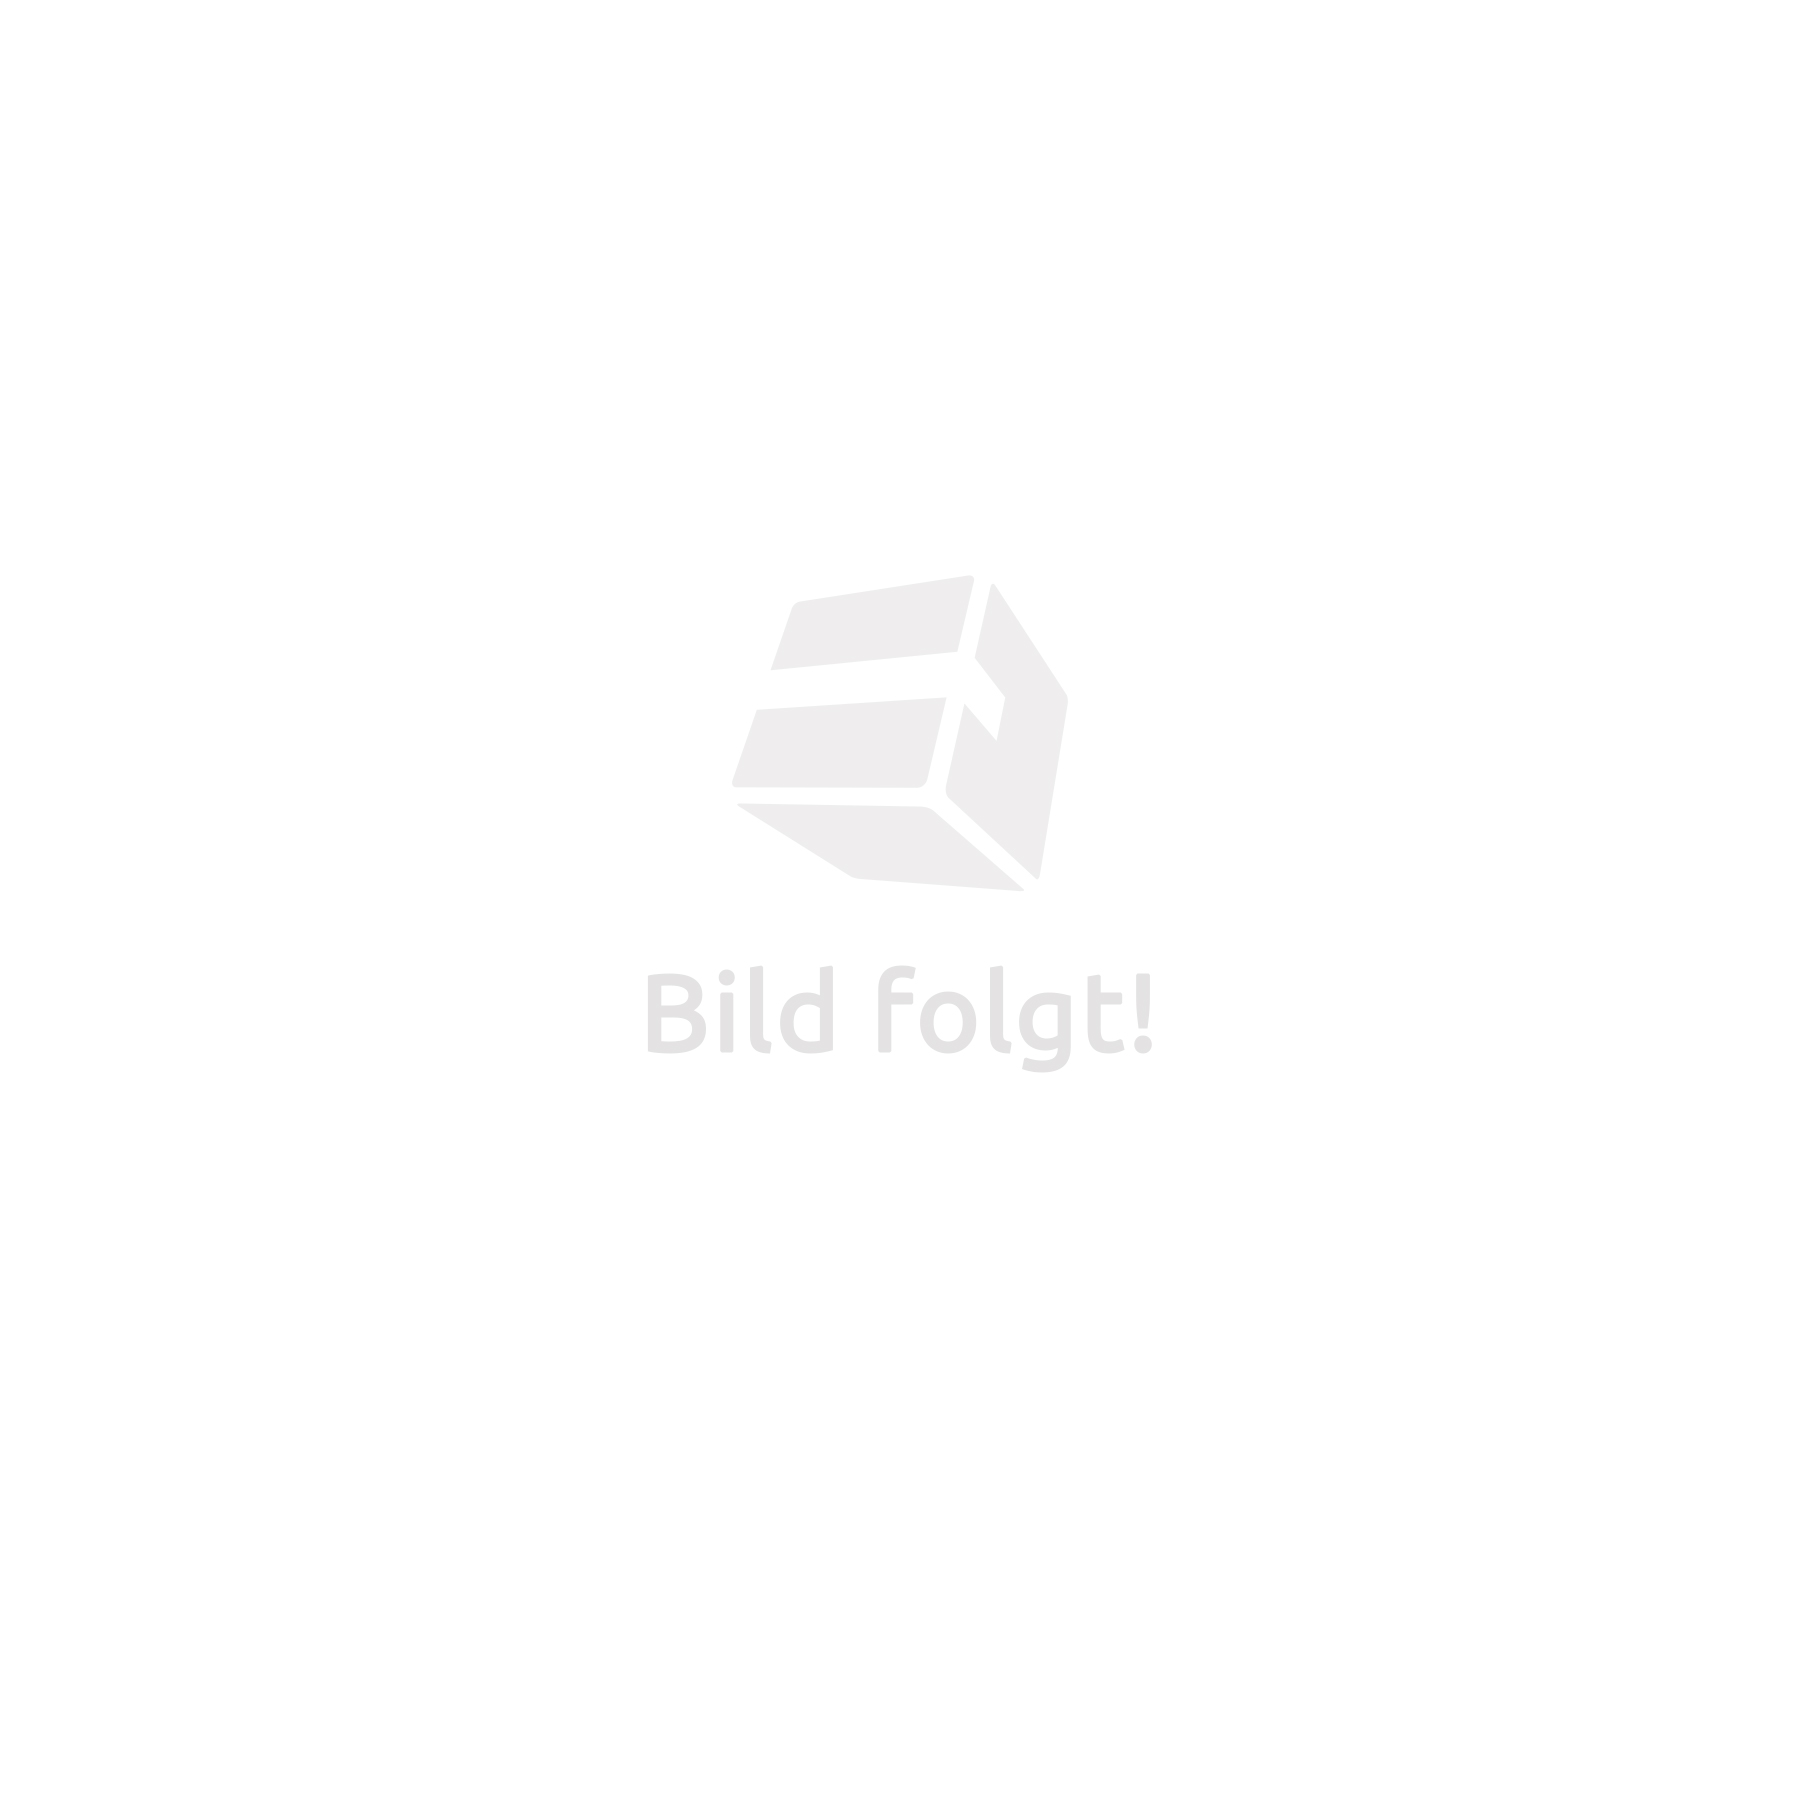 Alcove shelf with 3 levels